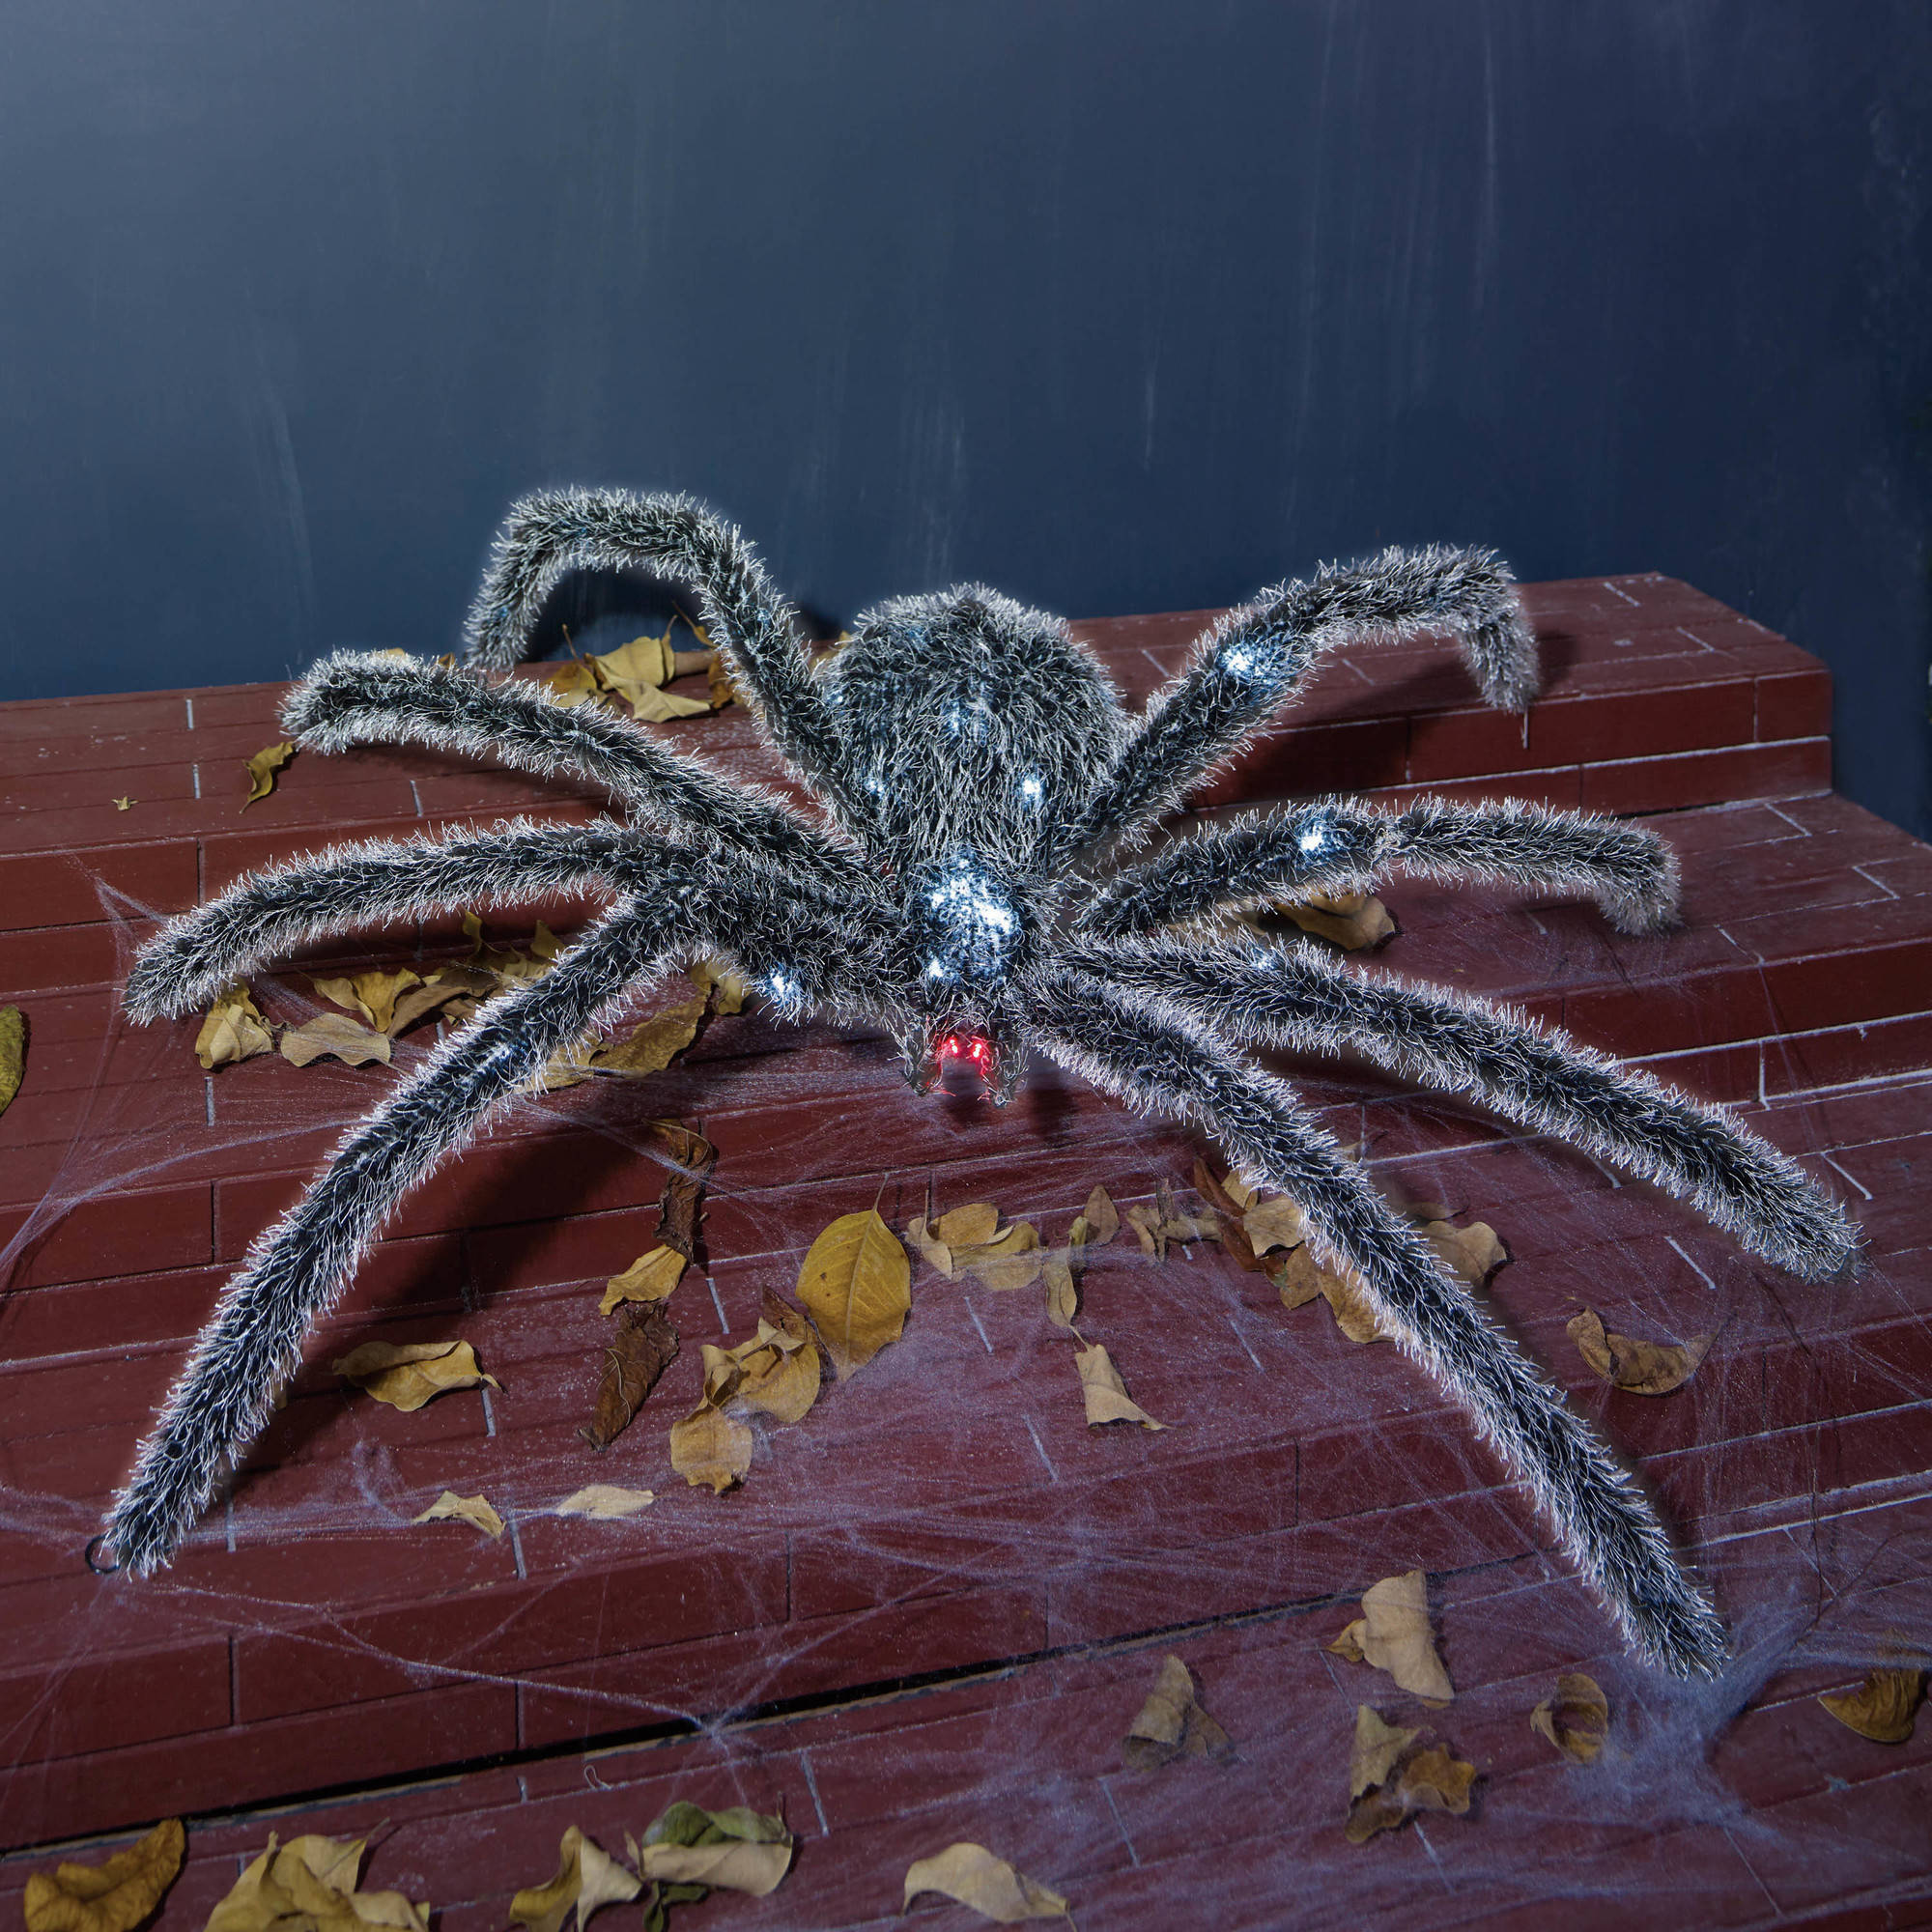 "Halloween 44"" UL Halloween LED Spider Sculpture, 44"" by TG-BROTHER CHRISTMAS GIFT CO.,LTD"